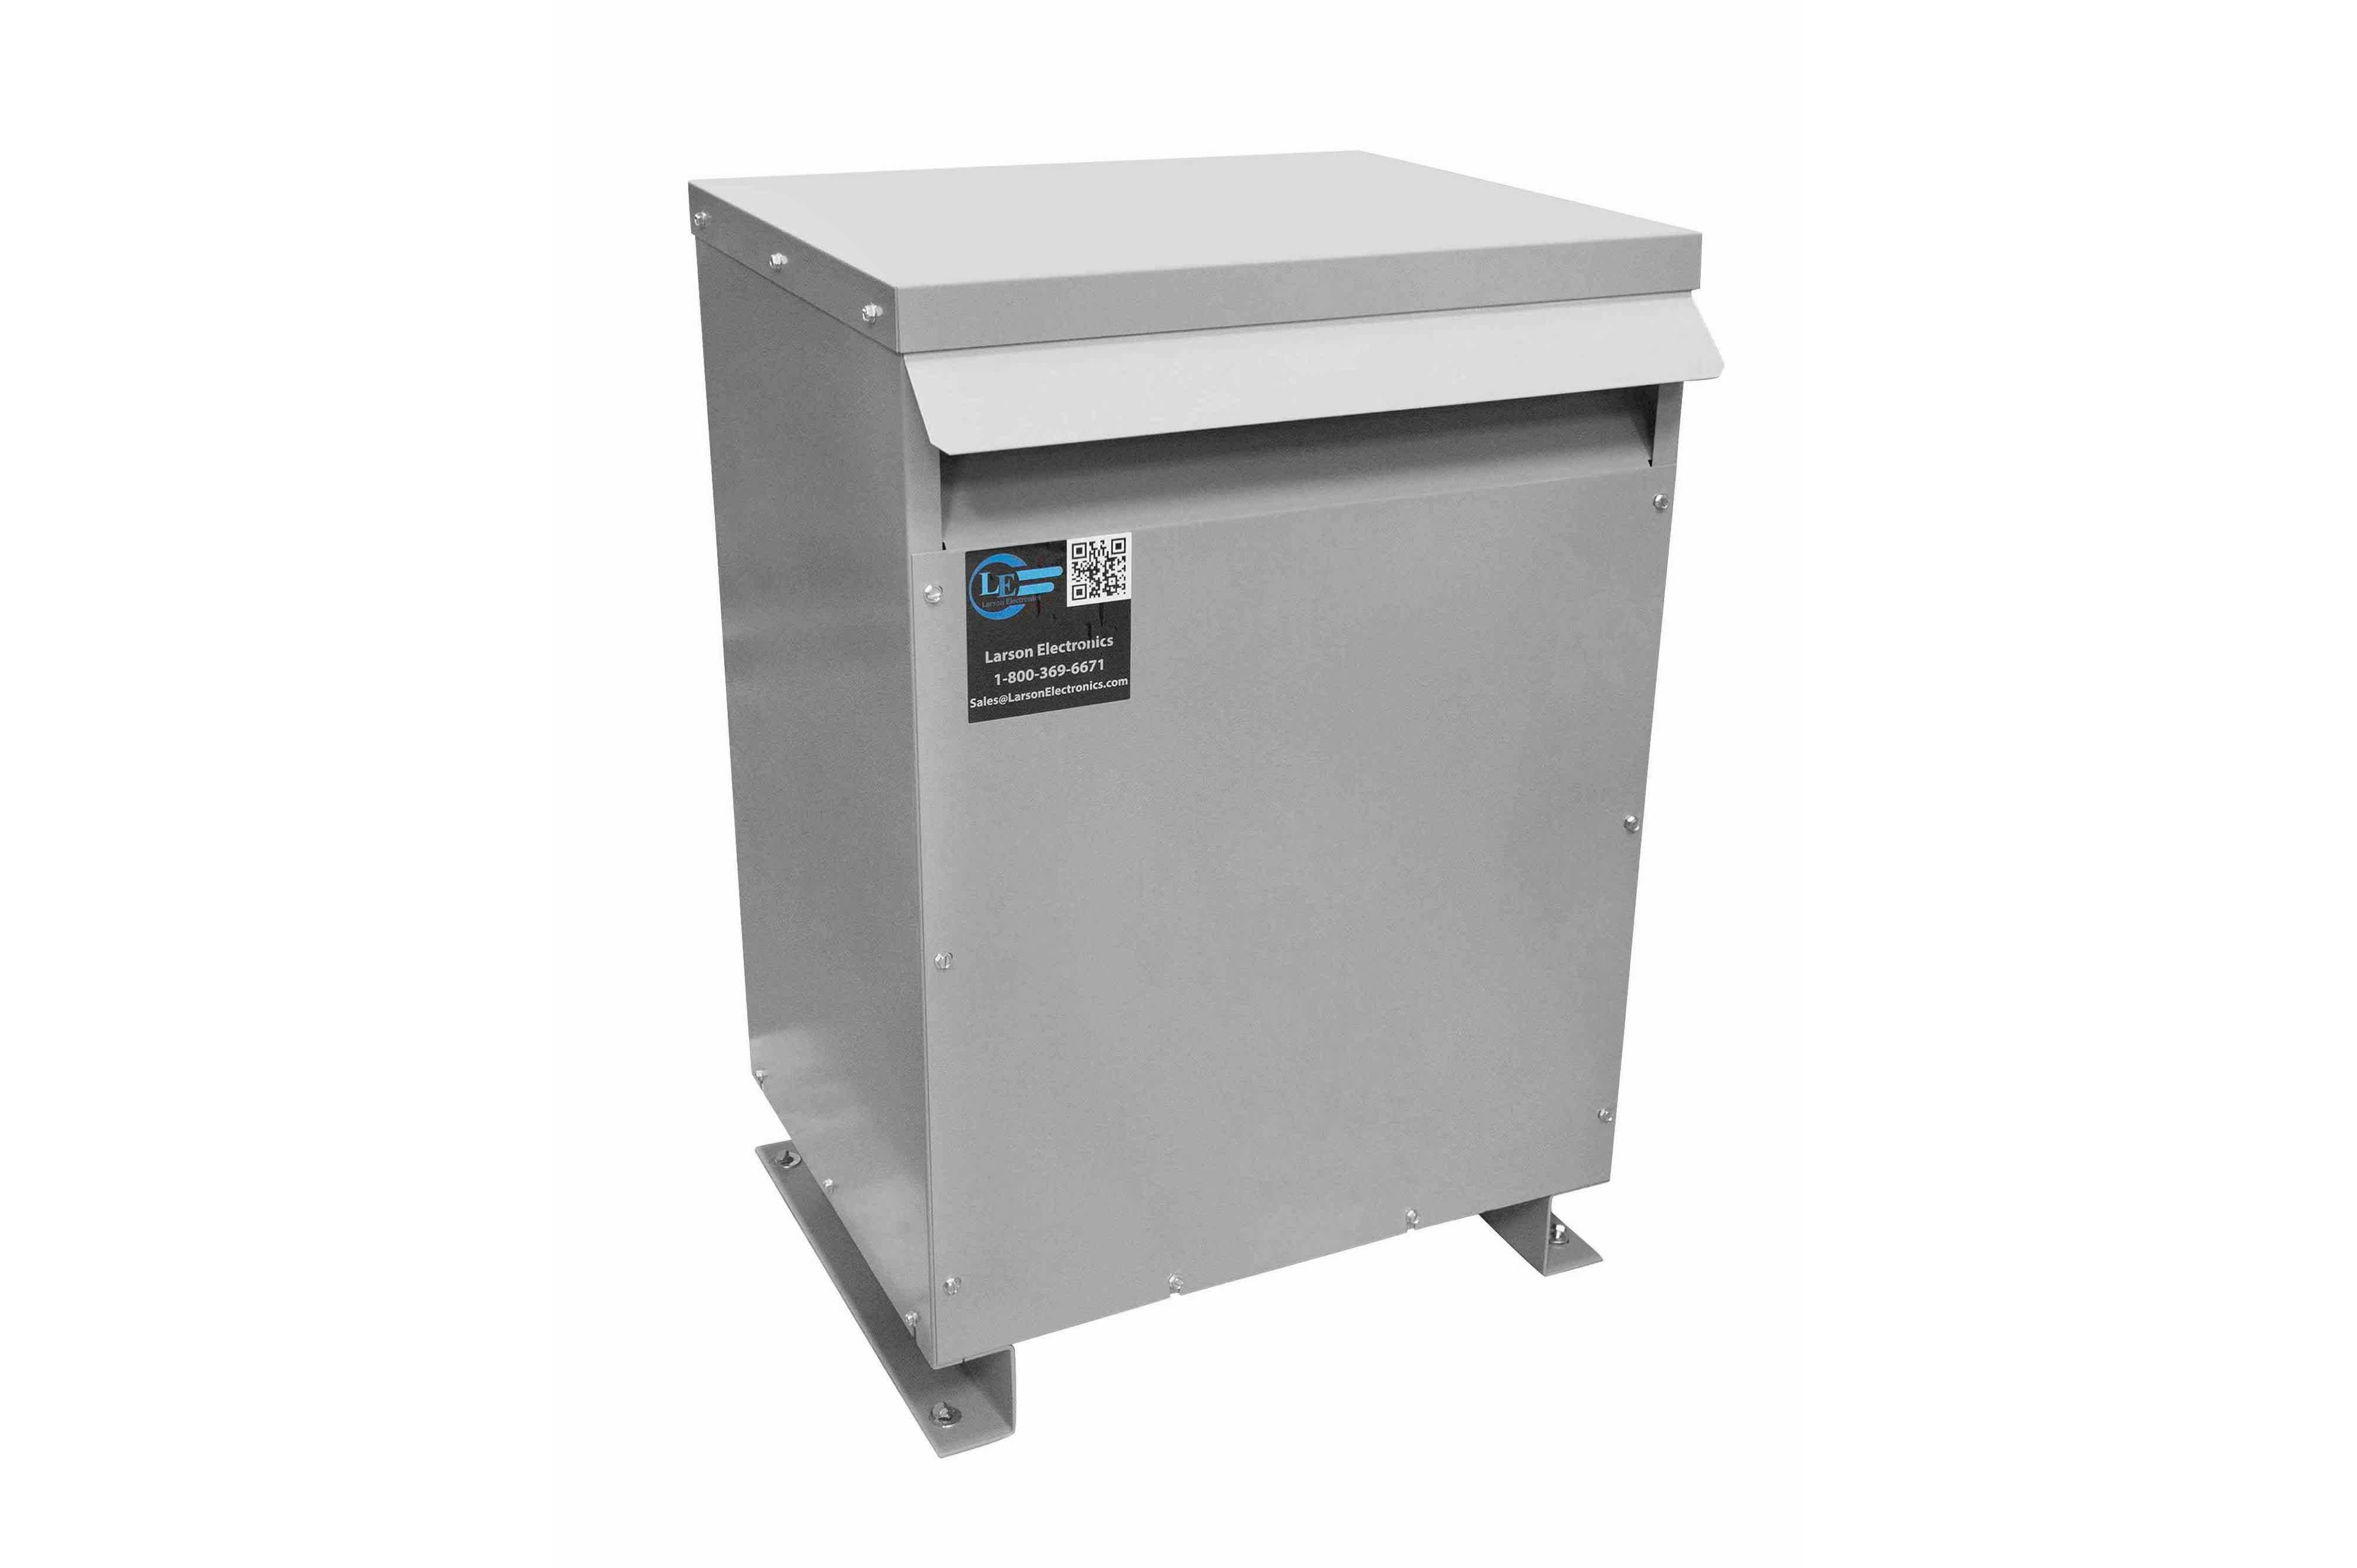 26 kVA 3PH Isolation Transformer, 460V Wye Primary, 400Y/231 Wye-N Secondary, N3R, Ventilated, 60 Hz